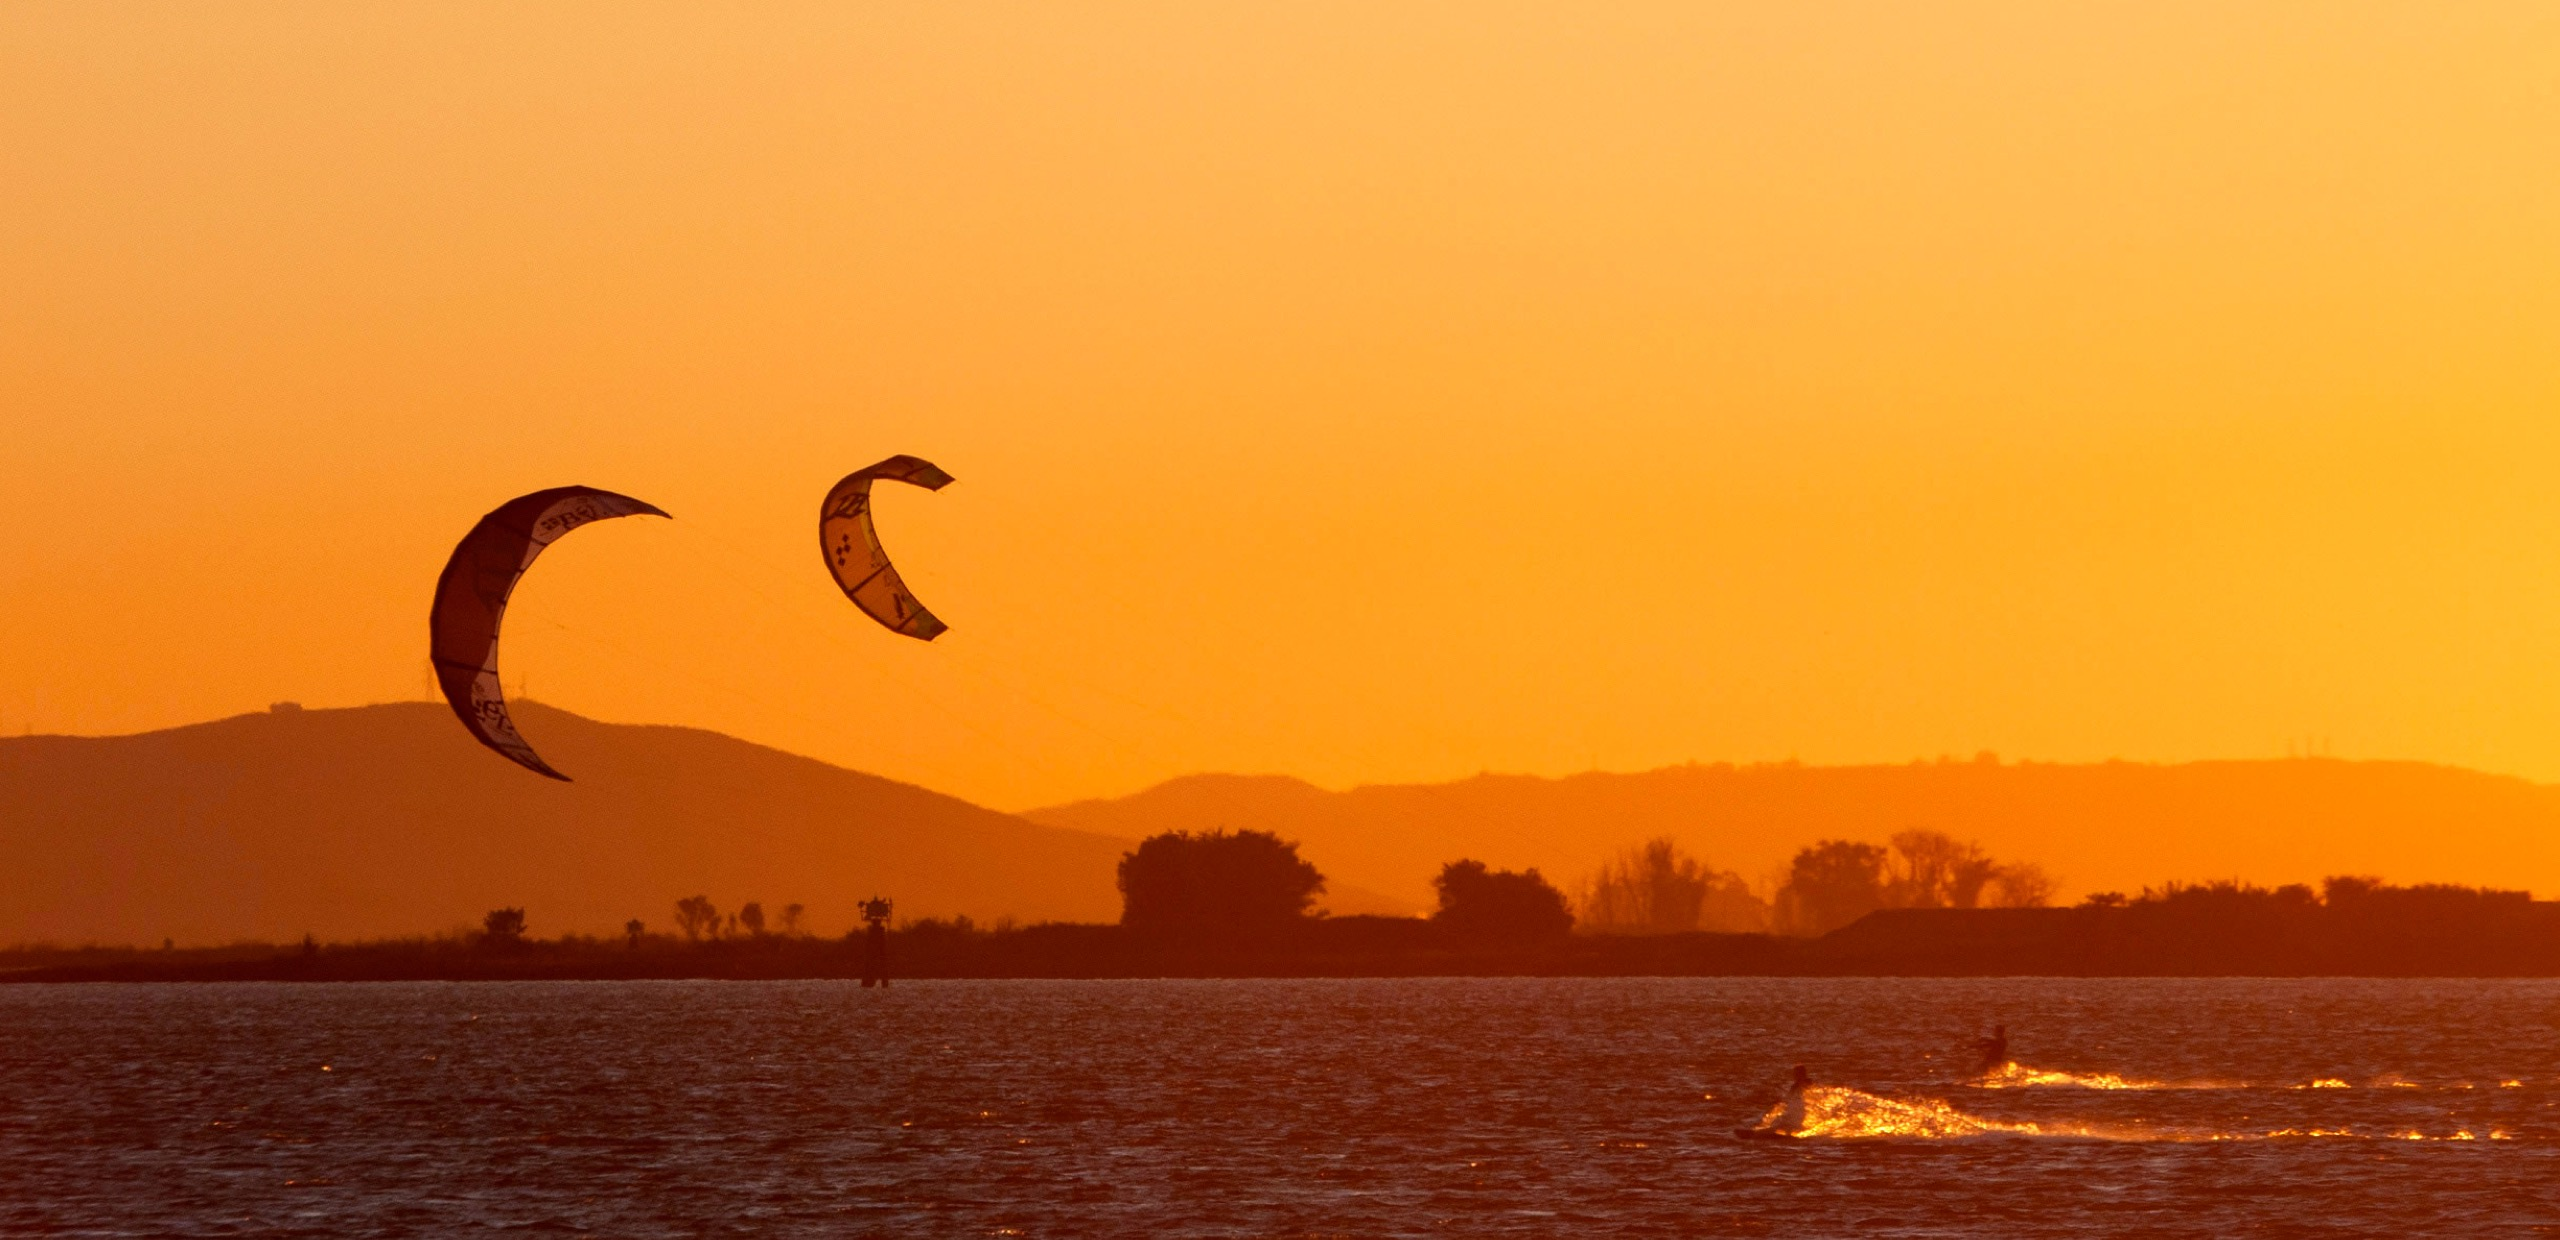 Kite surfers in river with beautiful orange sunset.